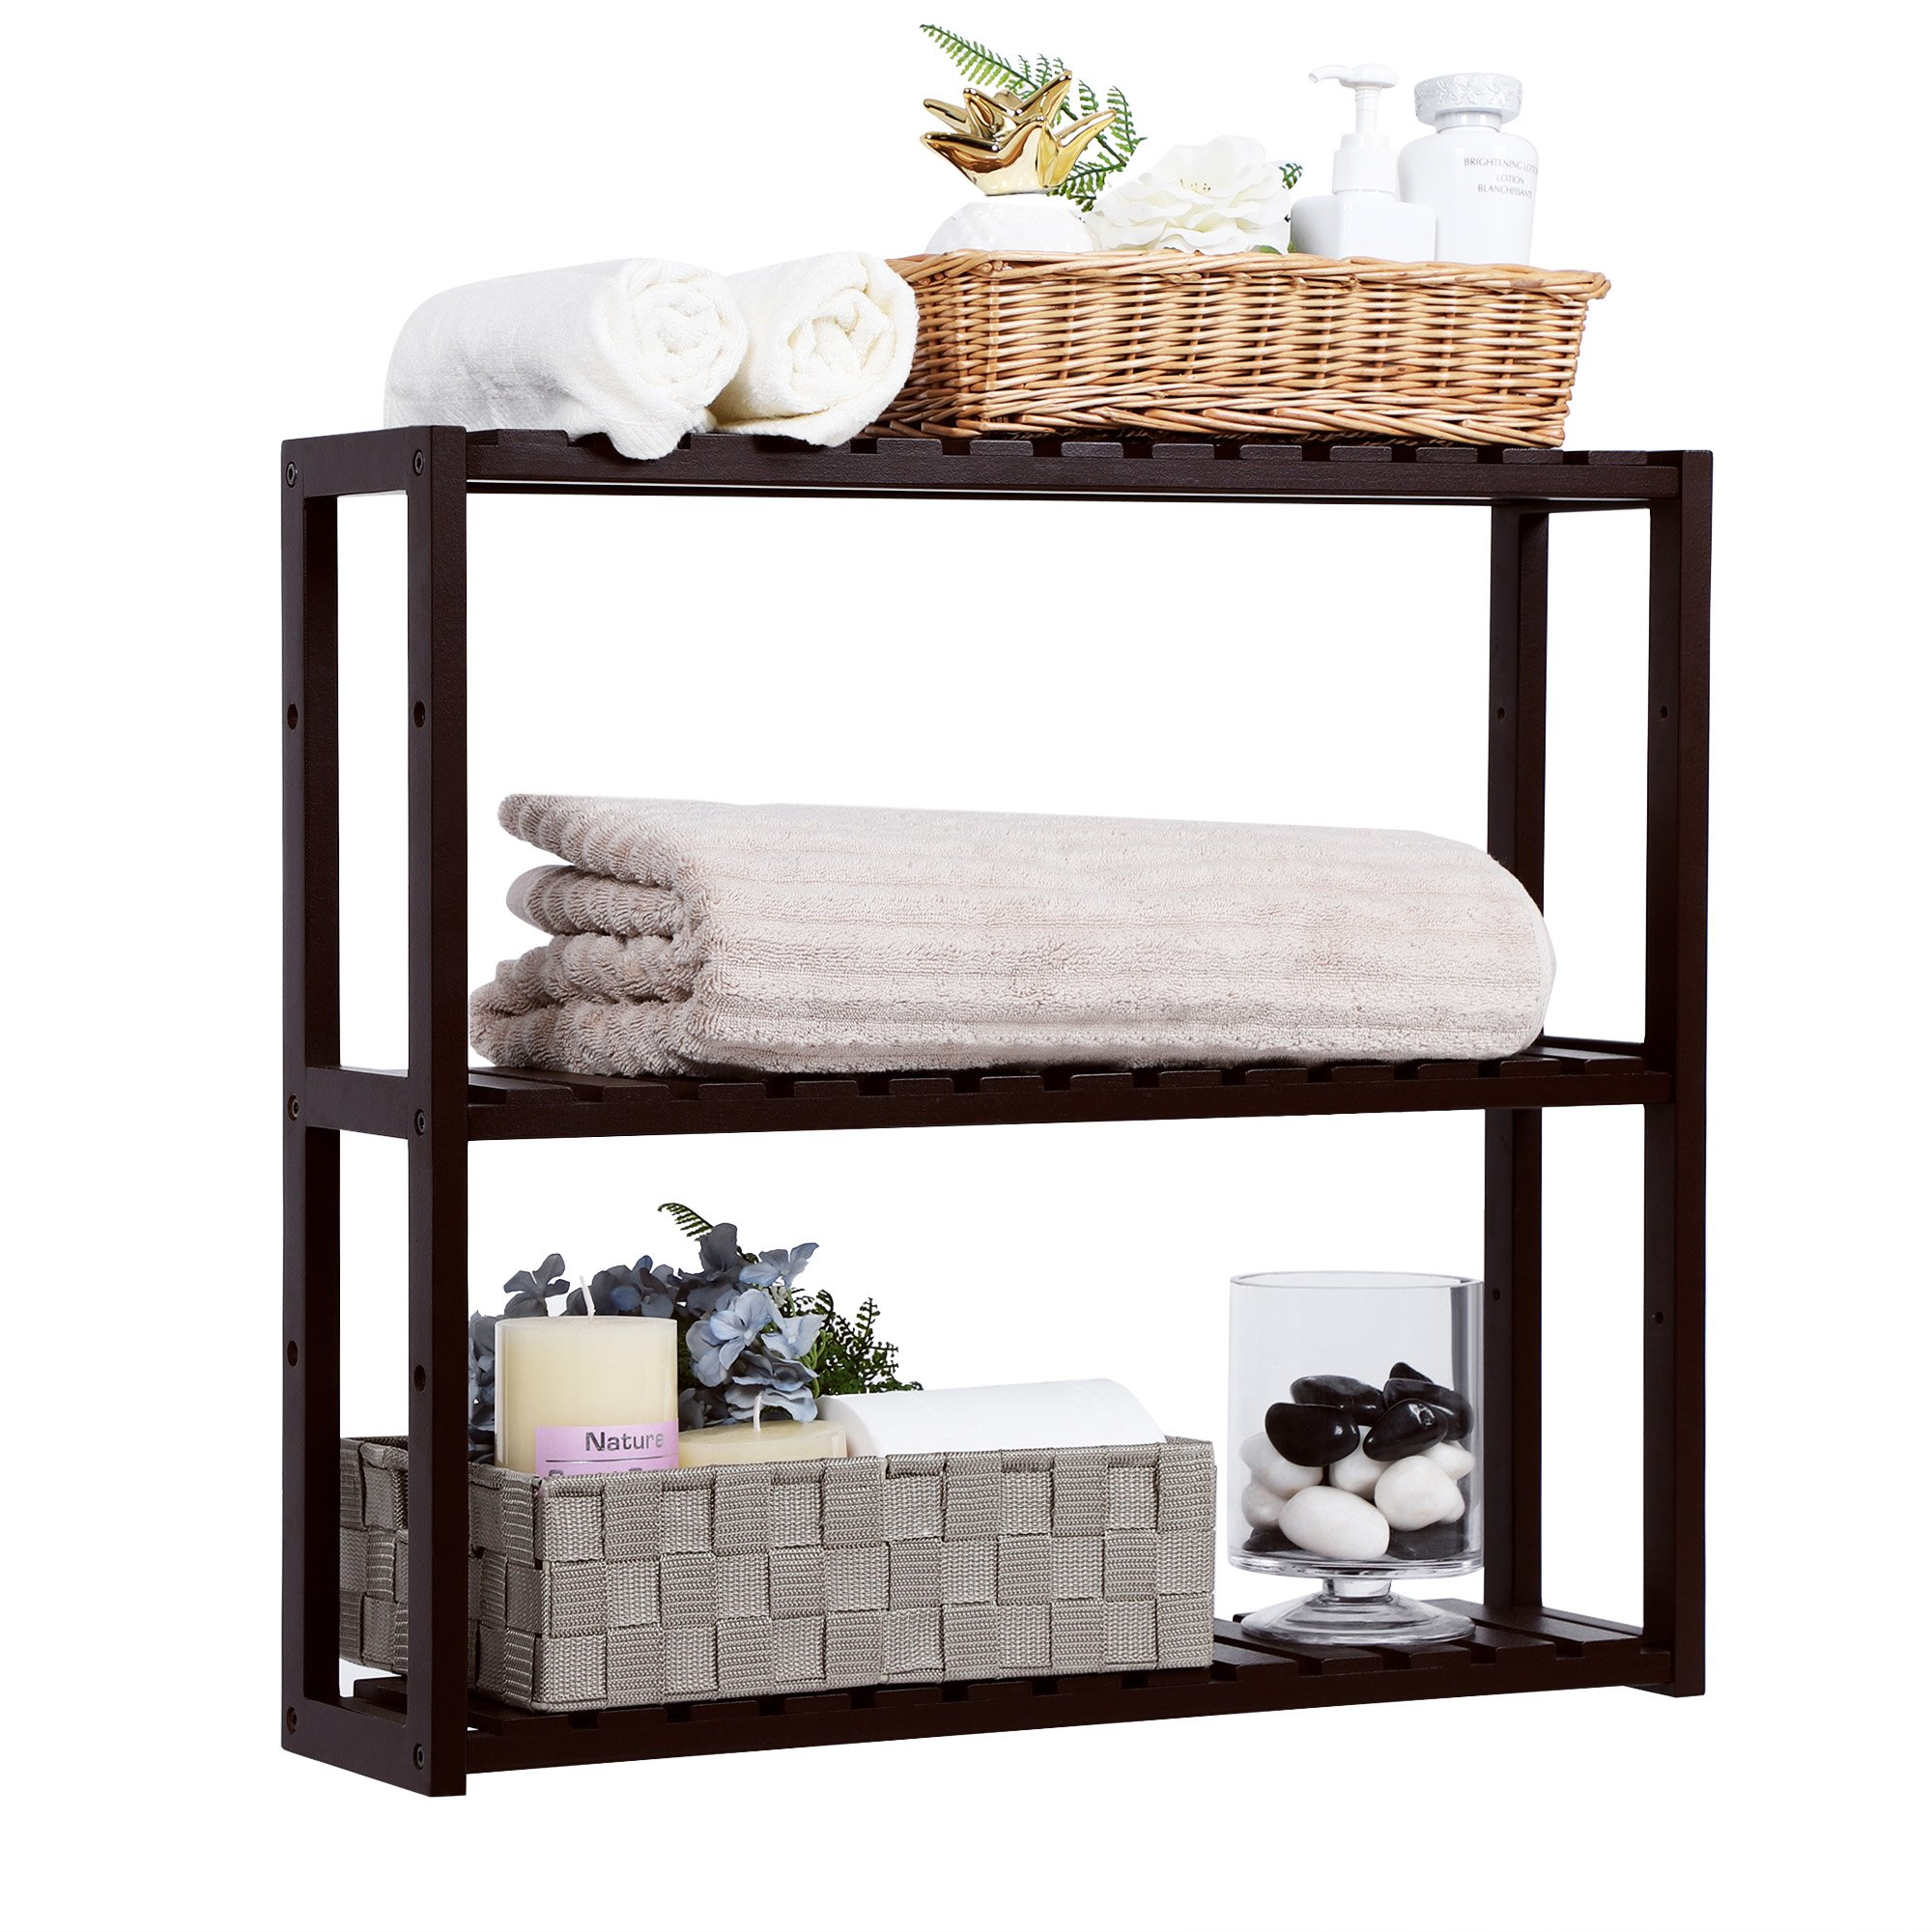 SONGMICS Bamboo Wood 3-Tier Utility Storage Shelf Rack Adjustable Layer Bathroom Towel Shelf Multifunctional Kitchen Living Room Holder Wall Mounted Brown UBCB13Z